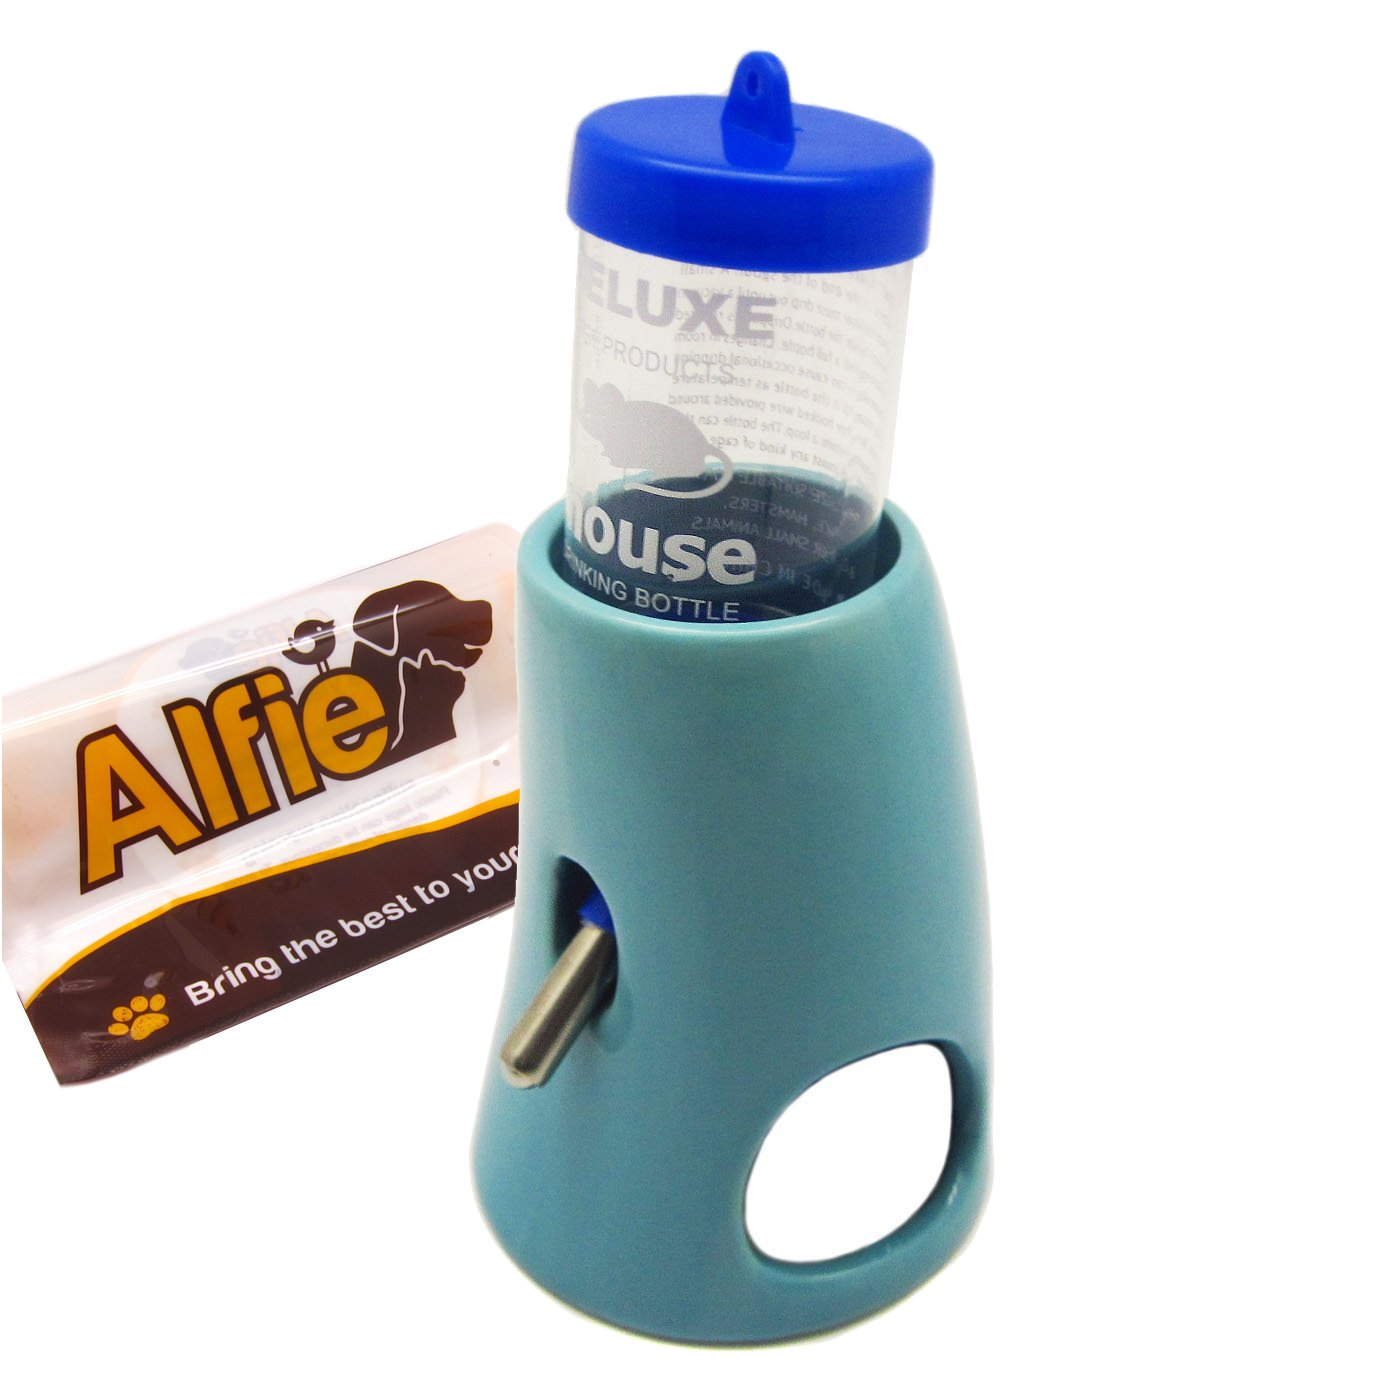 Alfie Pet - 2-in-1 Water Bottle with Hut for Small Animals Like Dwarf Hamster and Mouse - Color: Blue by Alfie